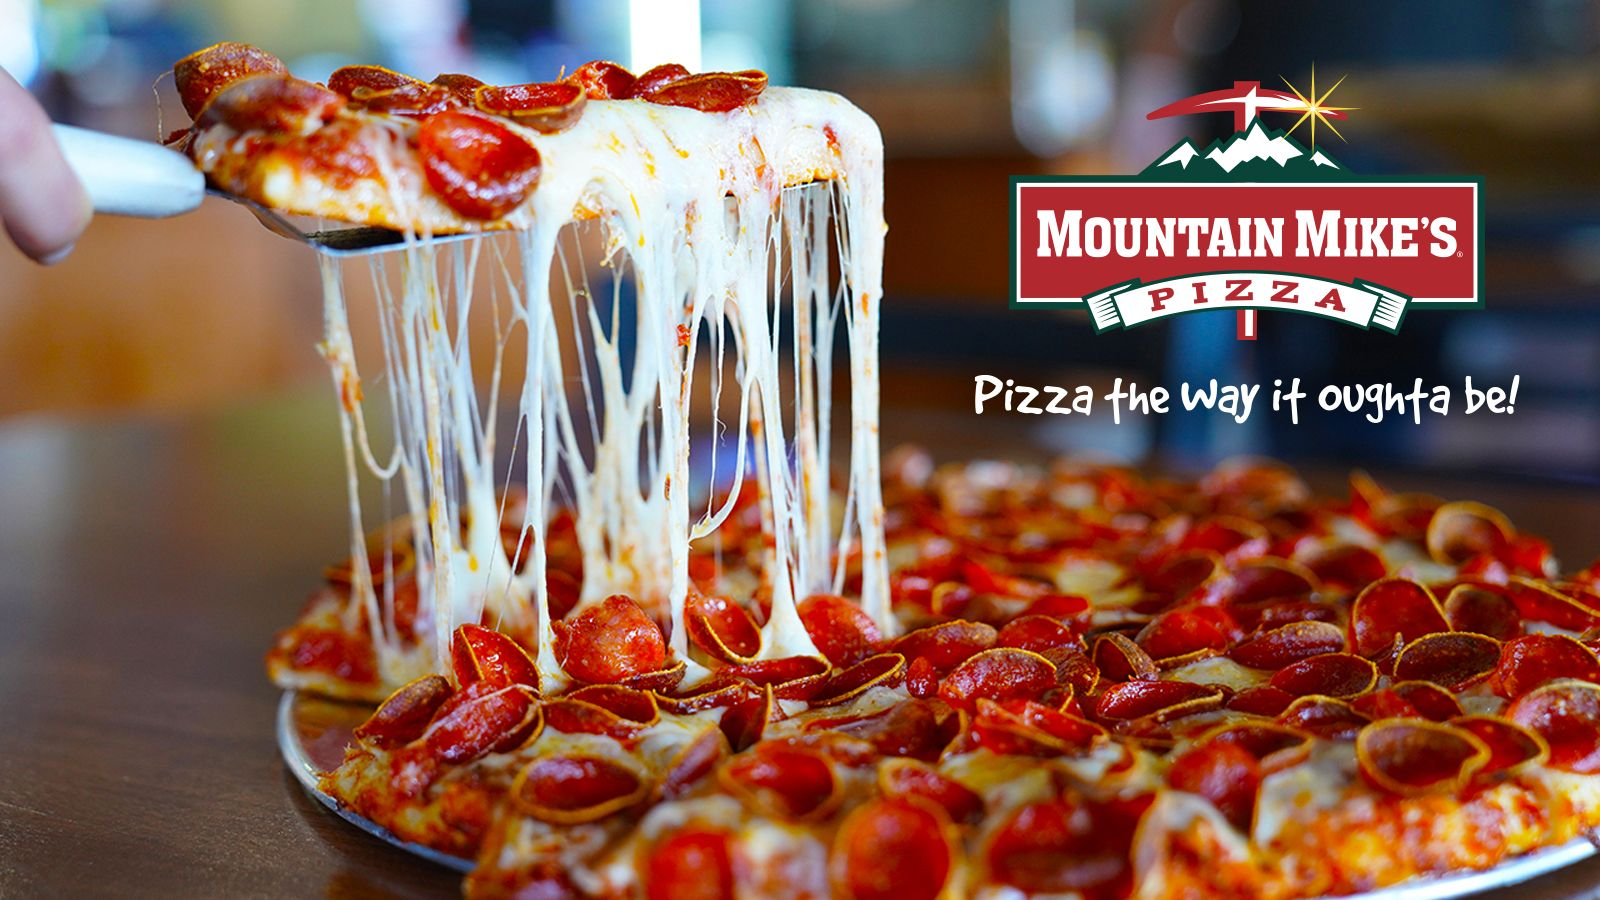 Mountain Mike's Pizza Continues To Reach New Heights in 2021 as Q2 Same Store Sales Rise 16.4%